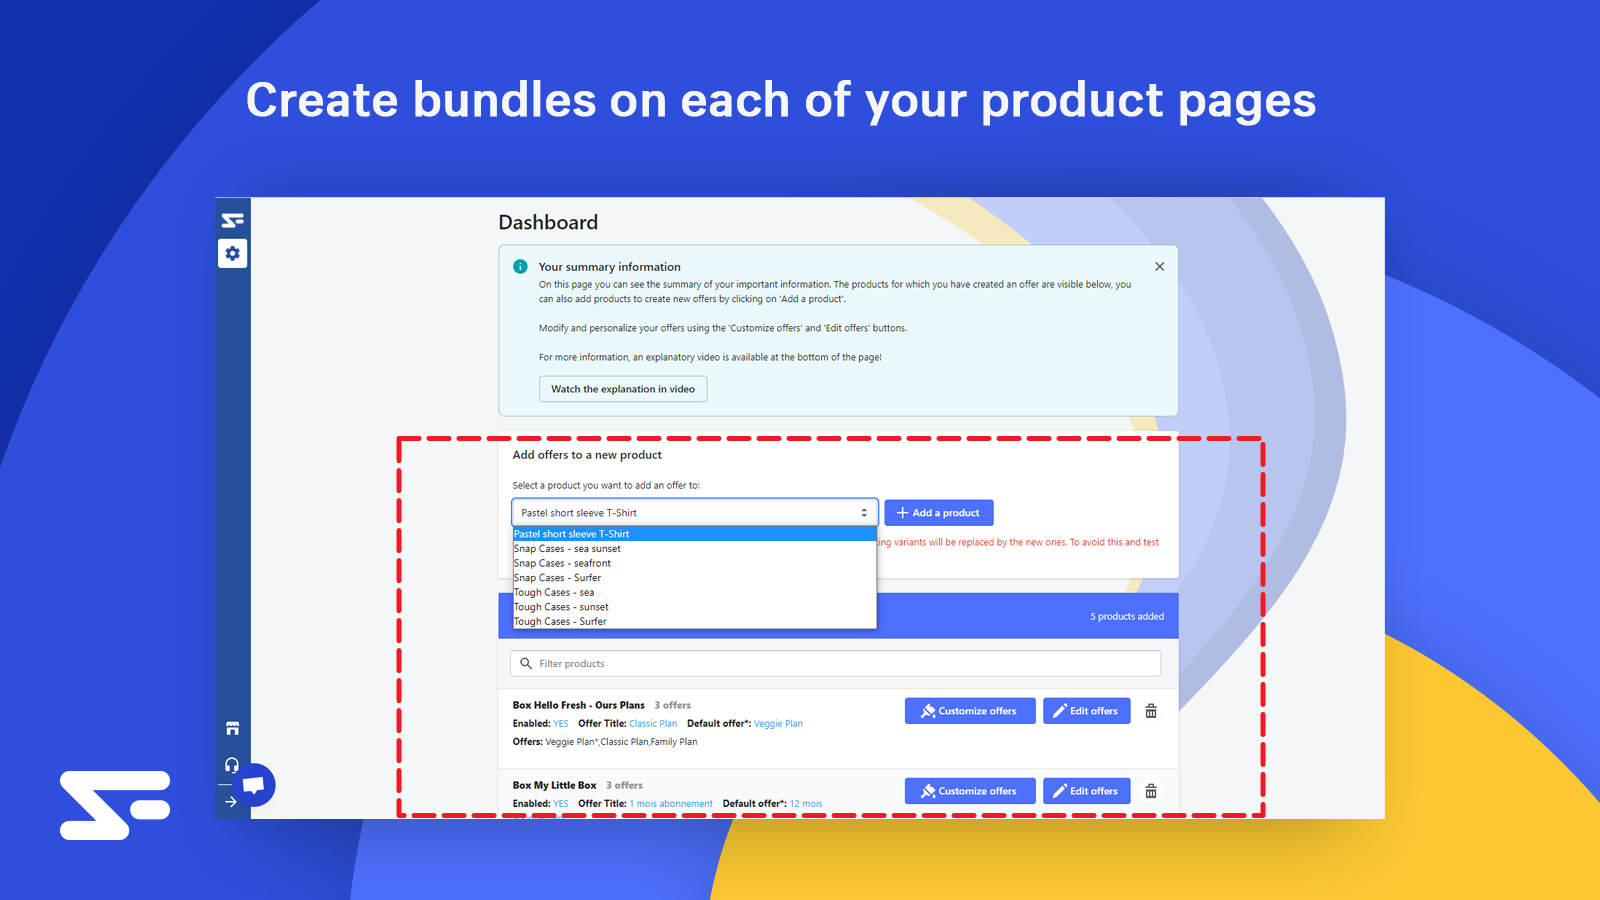 Create bundles on each of your product pages